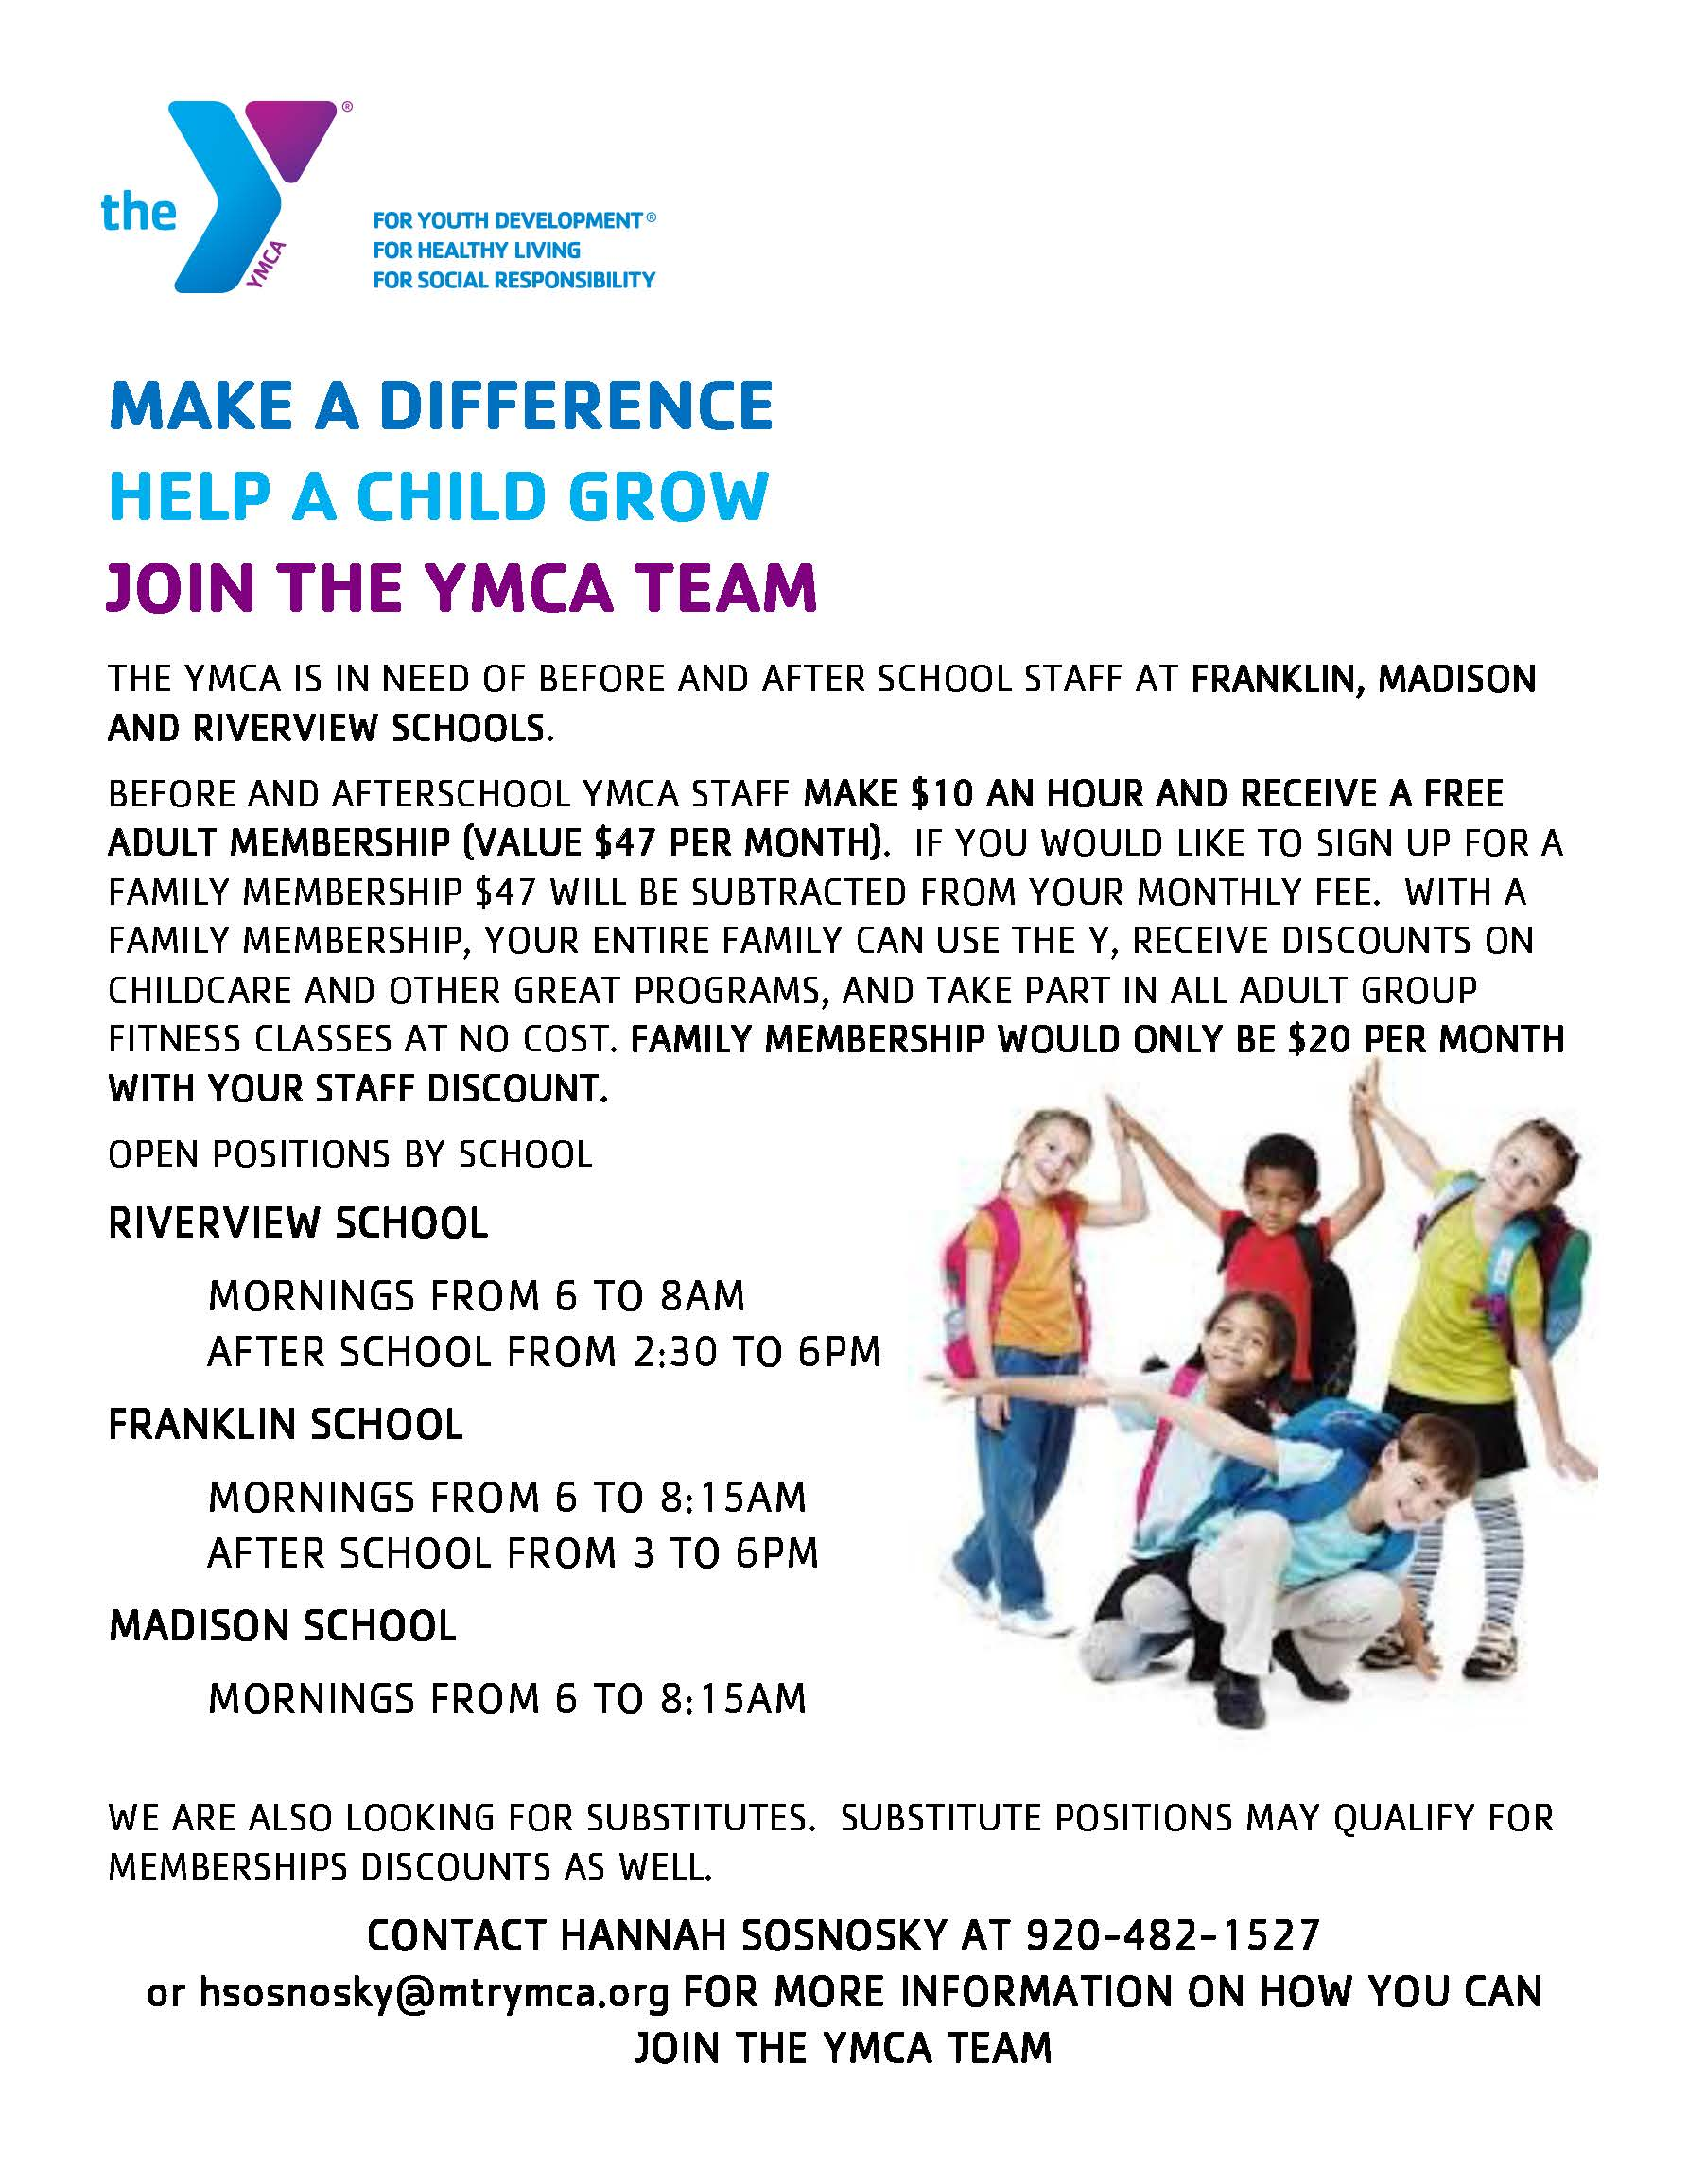 http://mtrymca.org/sites/mtrymca.org/assets/images/involved/Before-and-After-School-YMCA-Staff-job-posting-090818.jpg